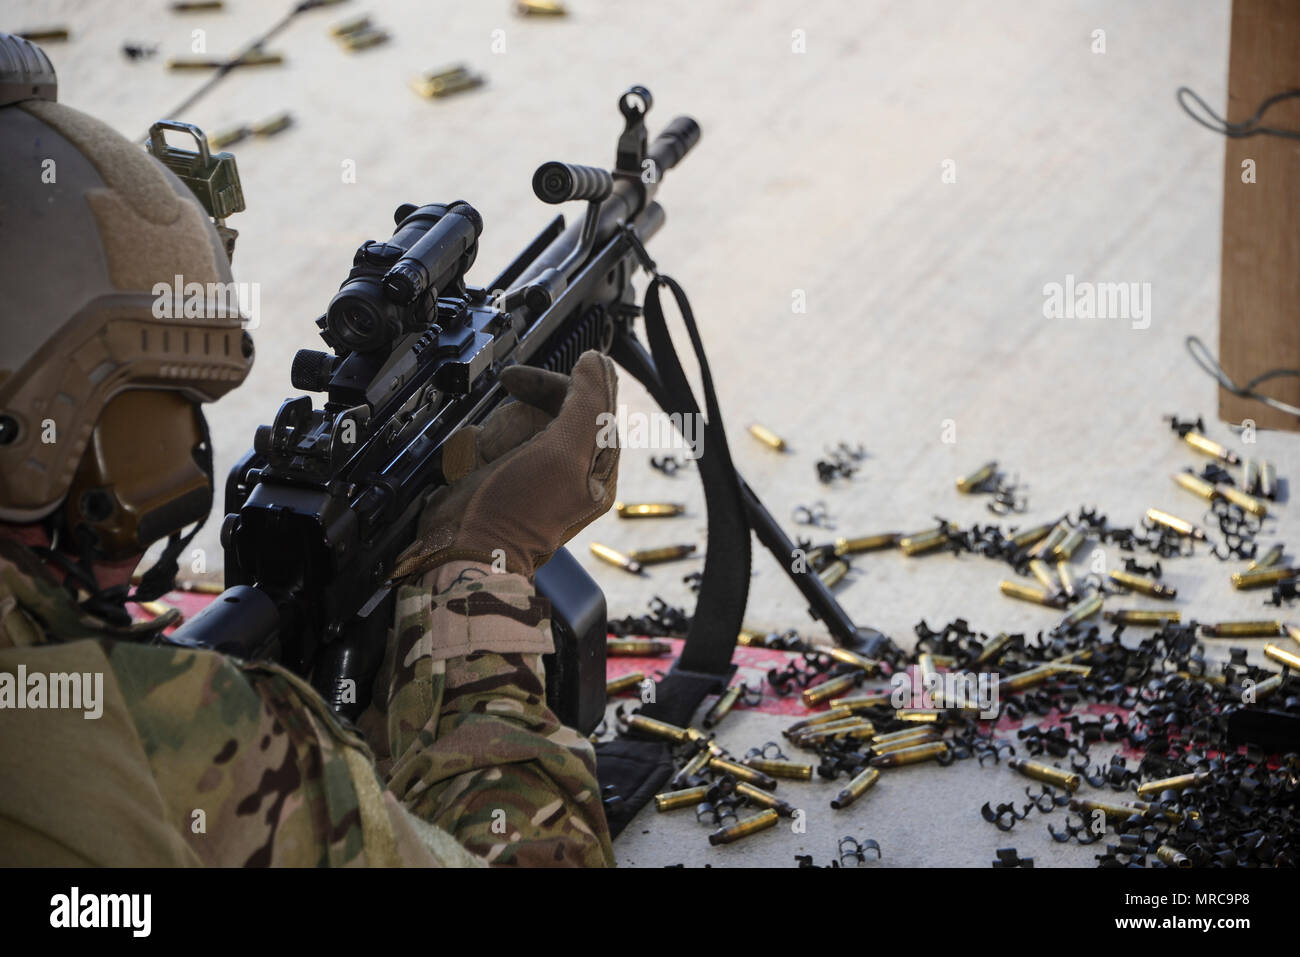 A U.S. Air Force pararescueman fires an M249 automatic rifle during the Guardian Angel Mission Qualification Training course at Davis-Monthan Air Force Base, Ariz., May 18, 2017. The MQT is a 90 day course that takes pararescuemen who have completed Air Education and Training Command schooling and helps them achieve their 5-level qualification. (U.S. Air Force photo by Airman 1st Class Nathan H. Barbour) - Stock Image